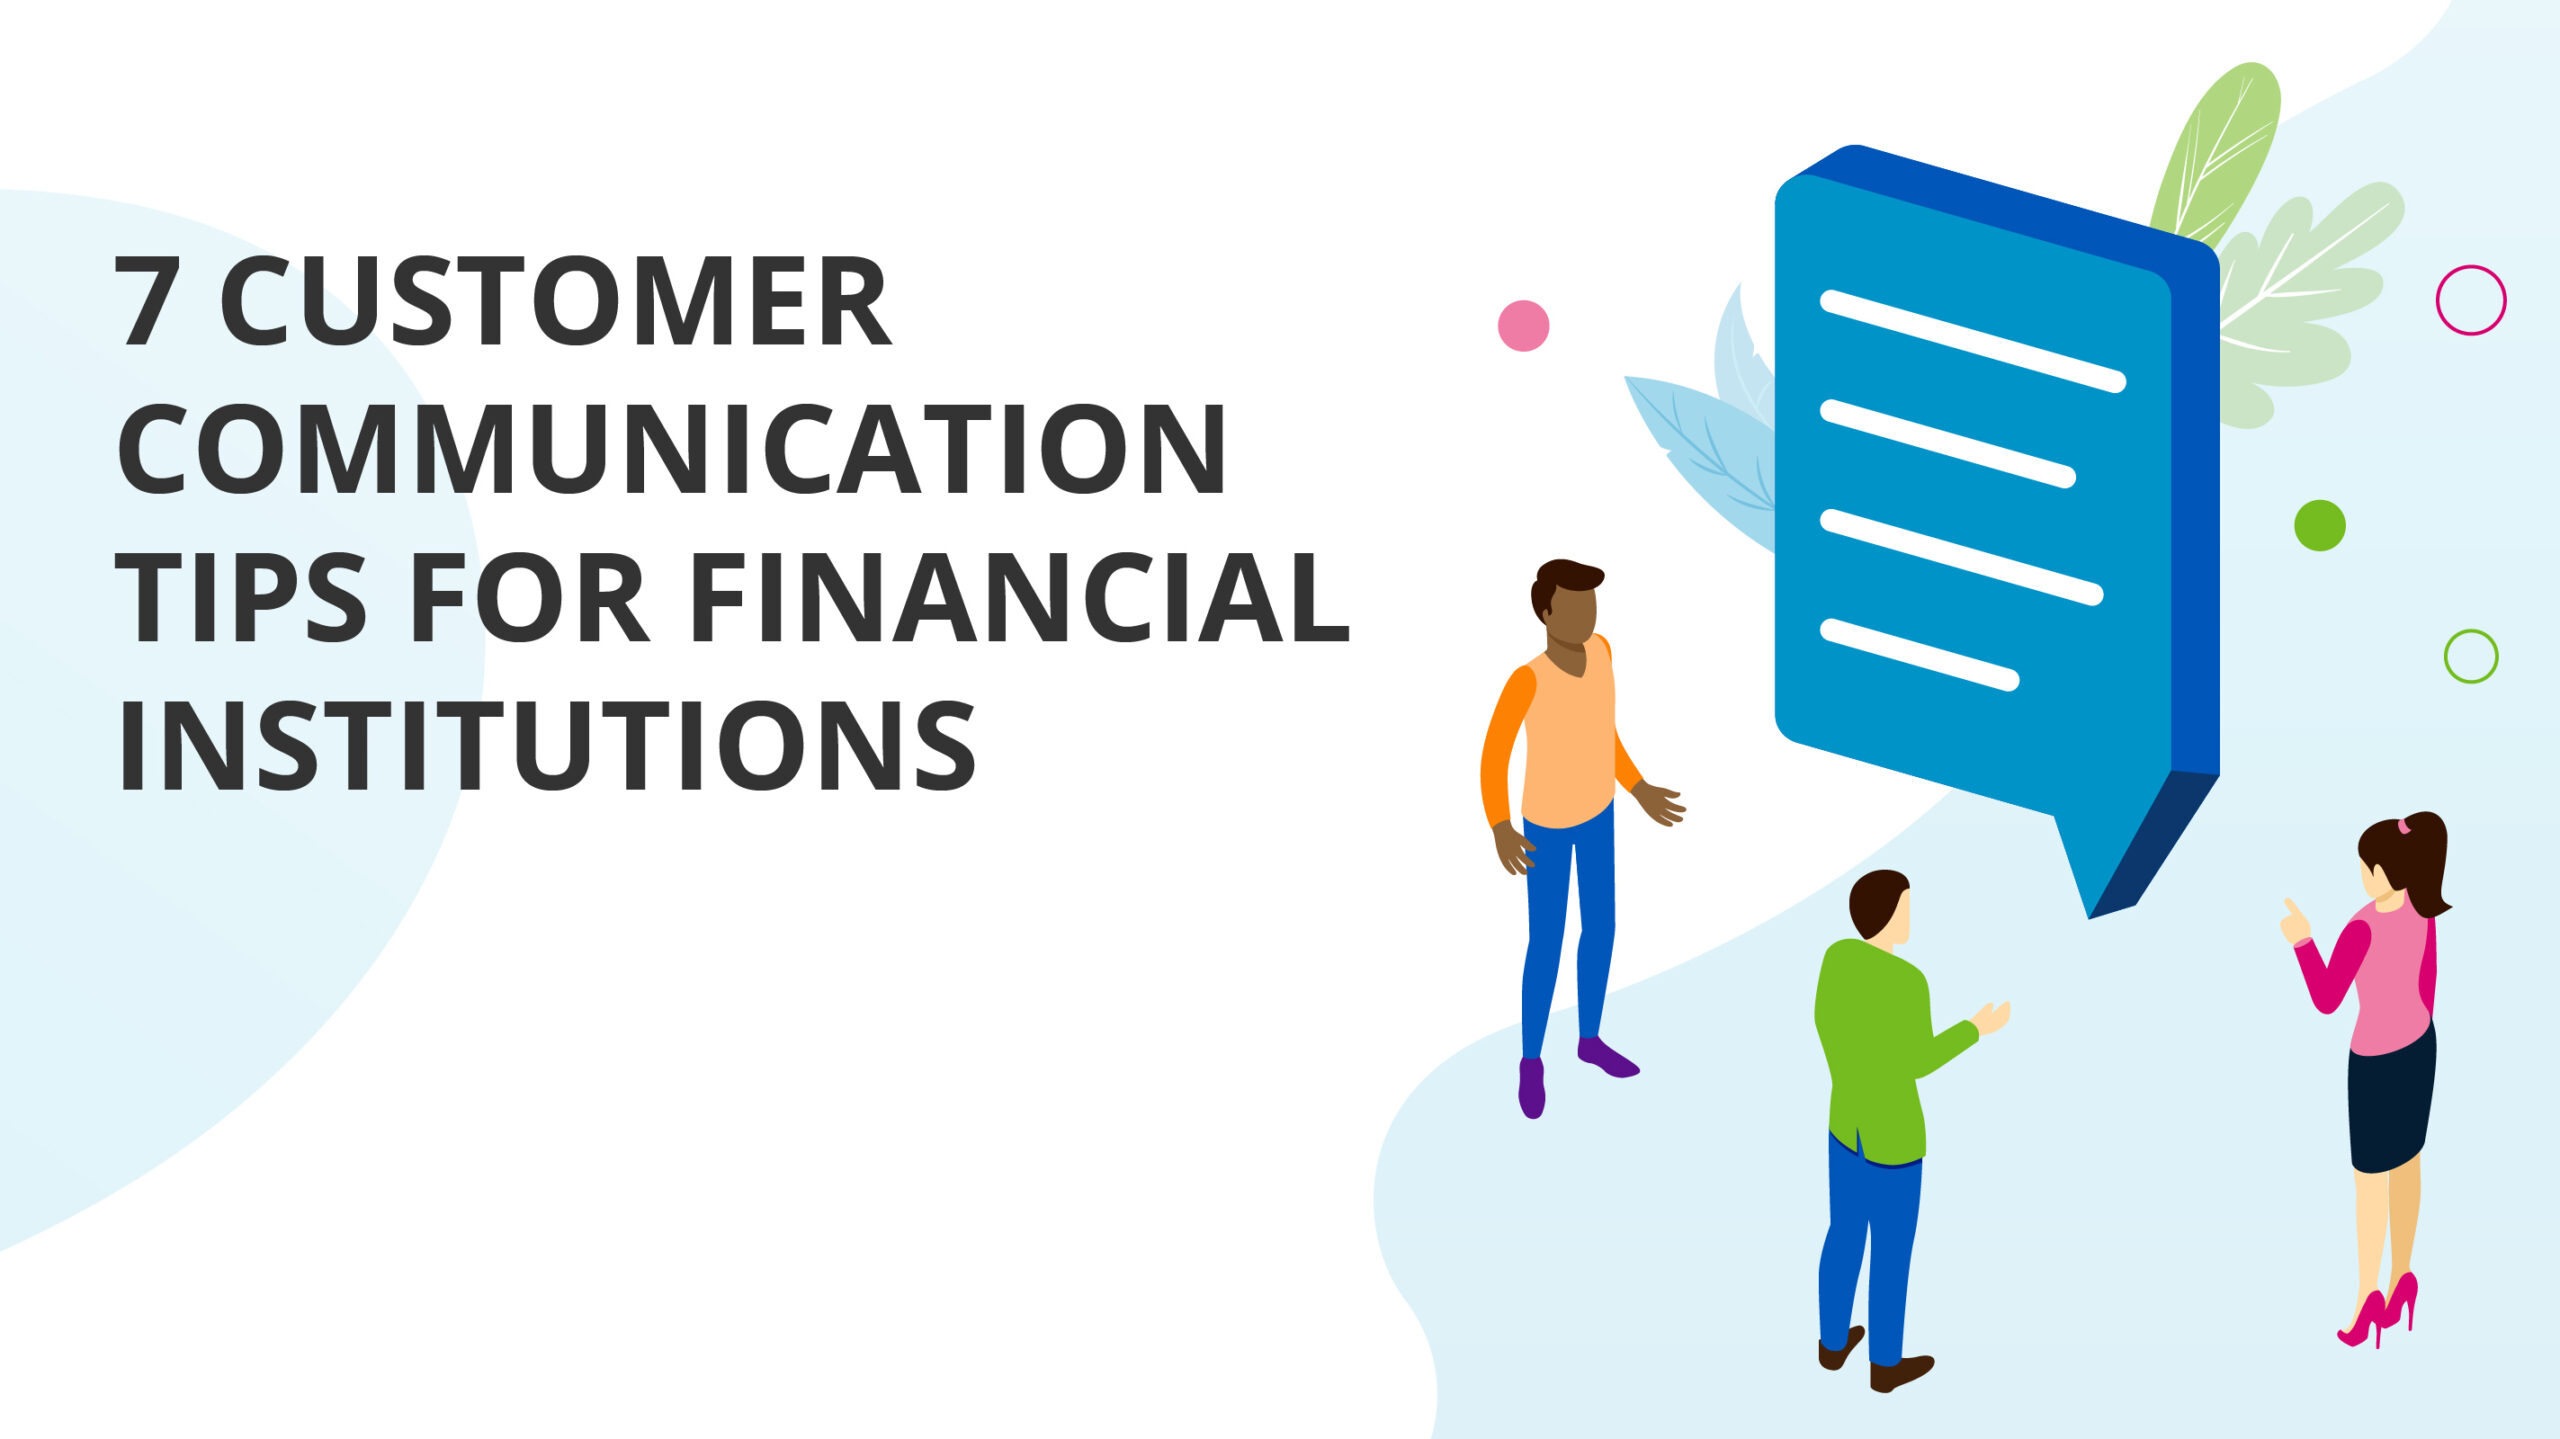 7 Customer Communication Tips for Financial Institutions